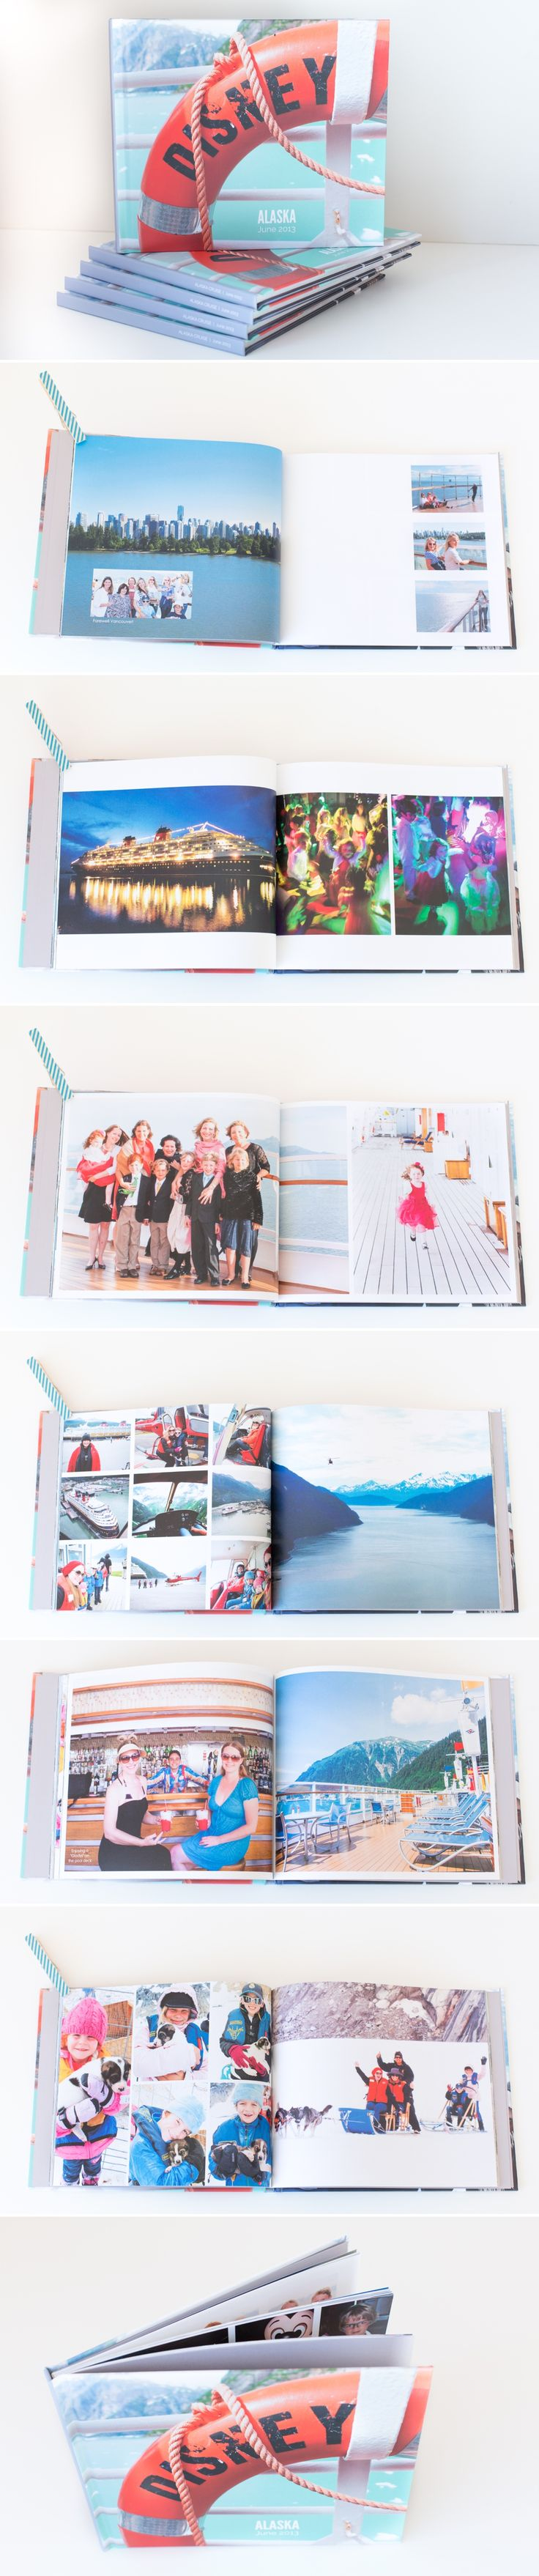 PhotoBook Friday | Family Vacation » Suzanne O'Brien Studio